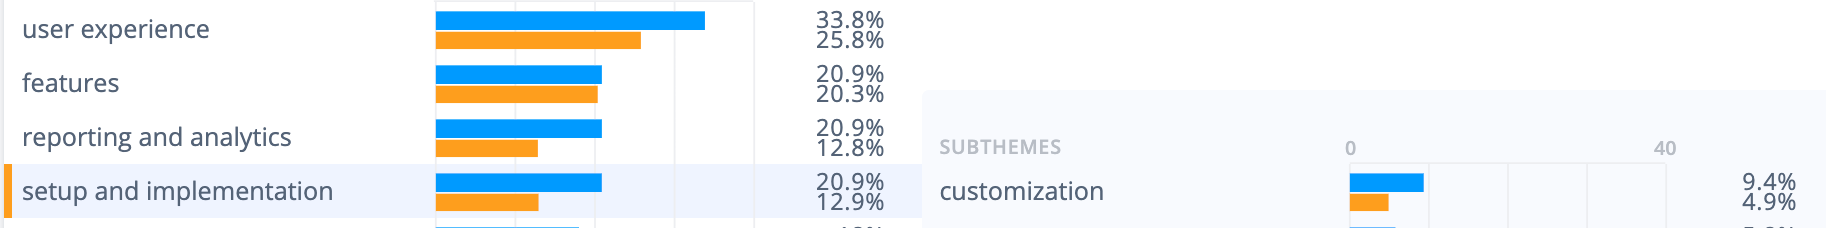 Apptentive survey tool weaknesses: Users dislike the lack of customization options